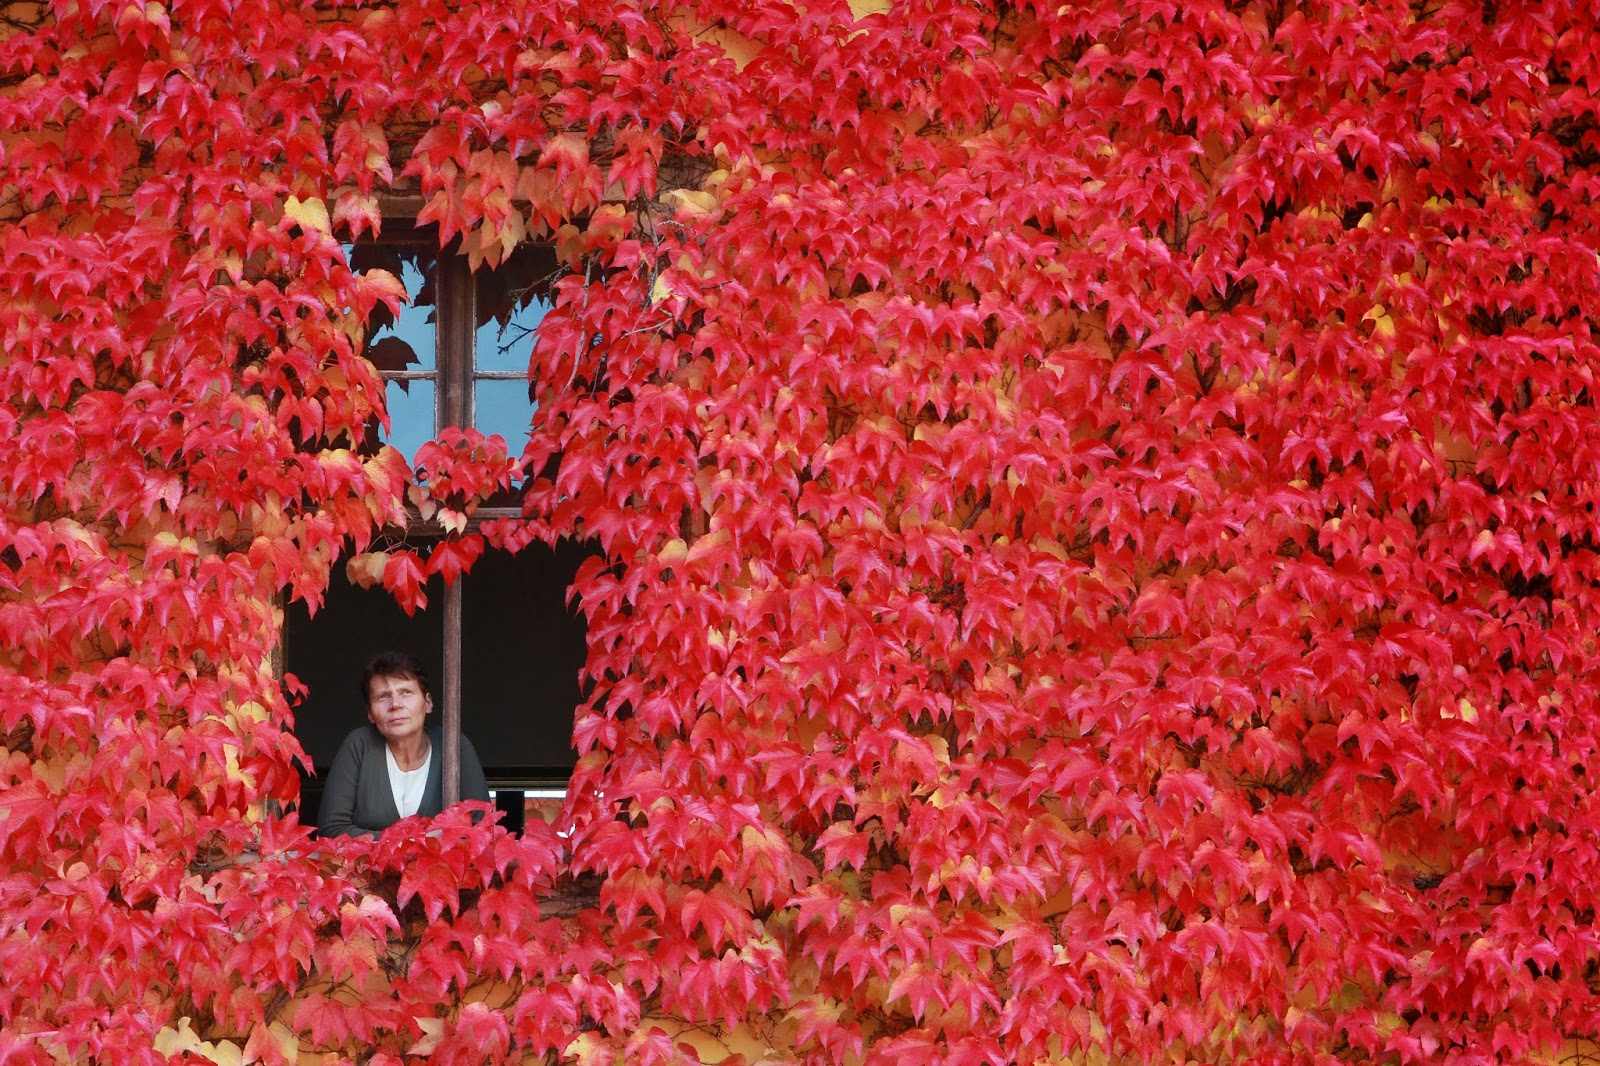 Agriculture, Ballenstedt, Color, Germany, House, House Covered, Leaves, Lifestyle, Plant, Temperature, Weather, Window, Women,